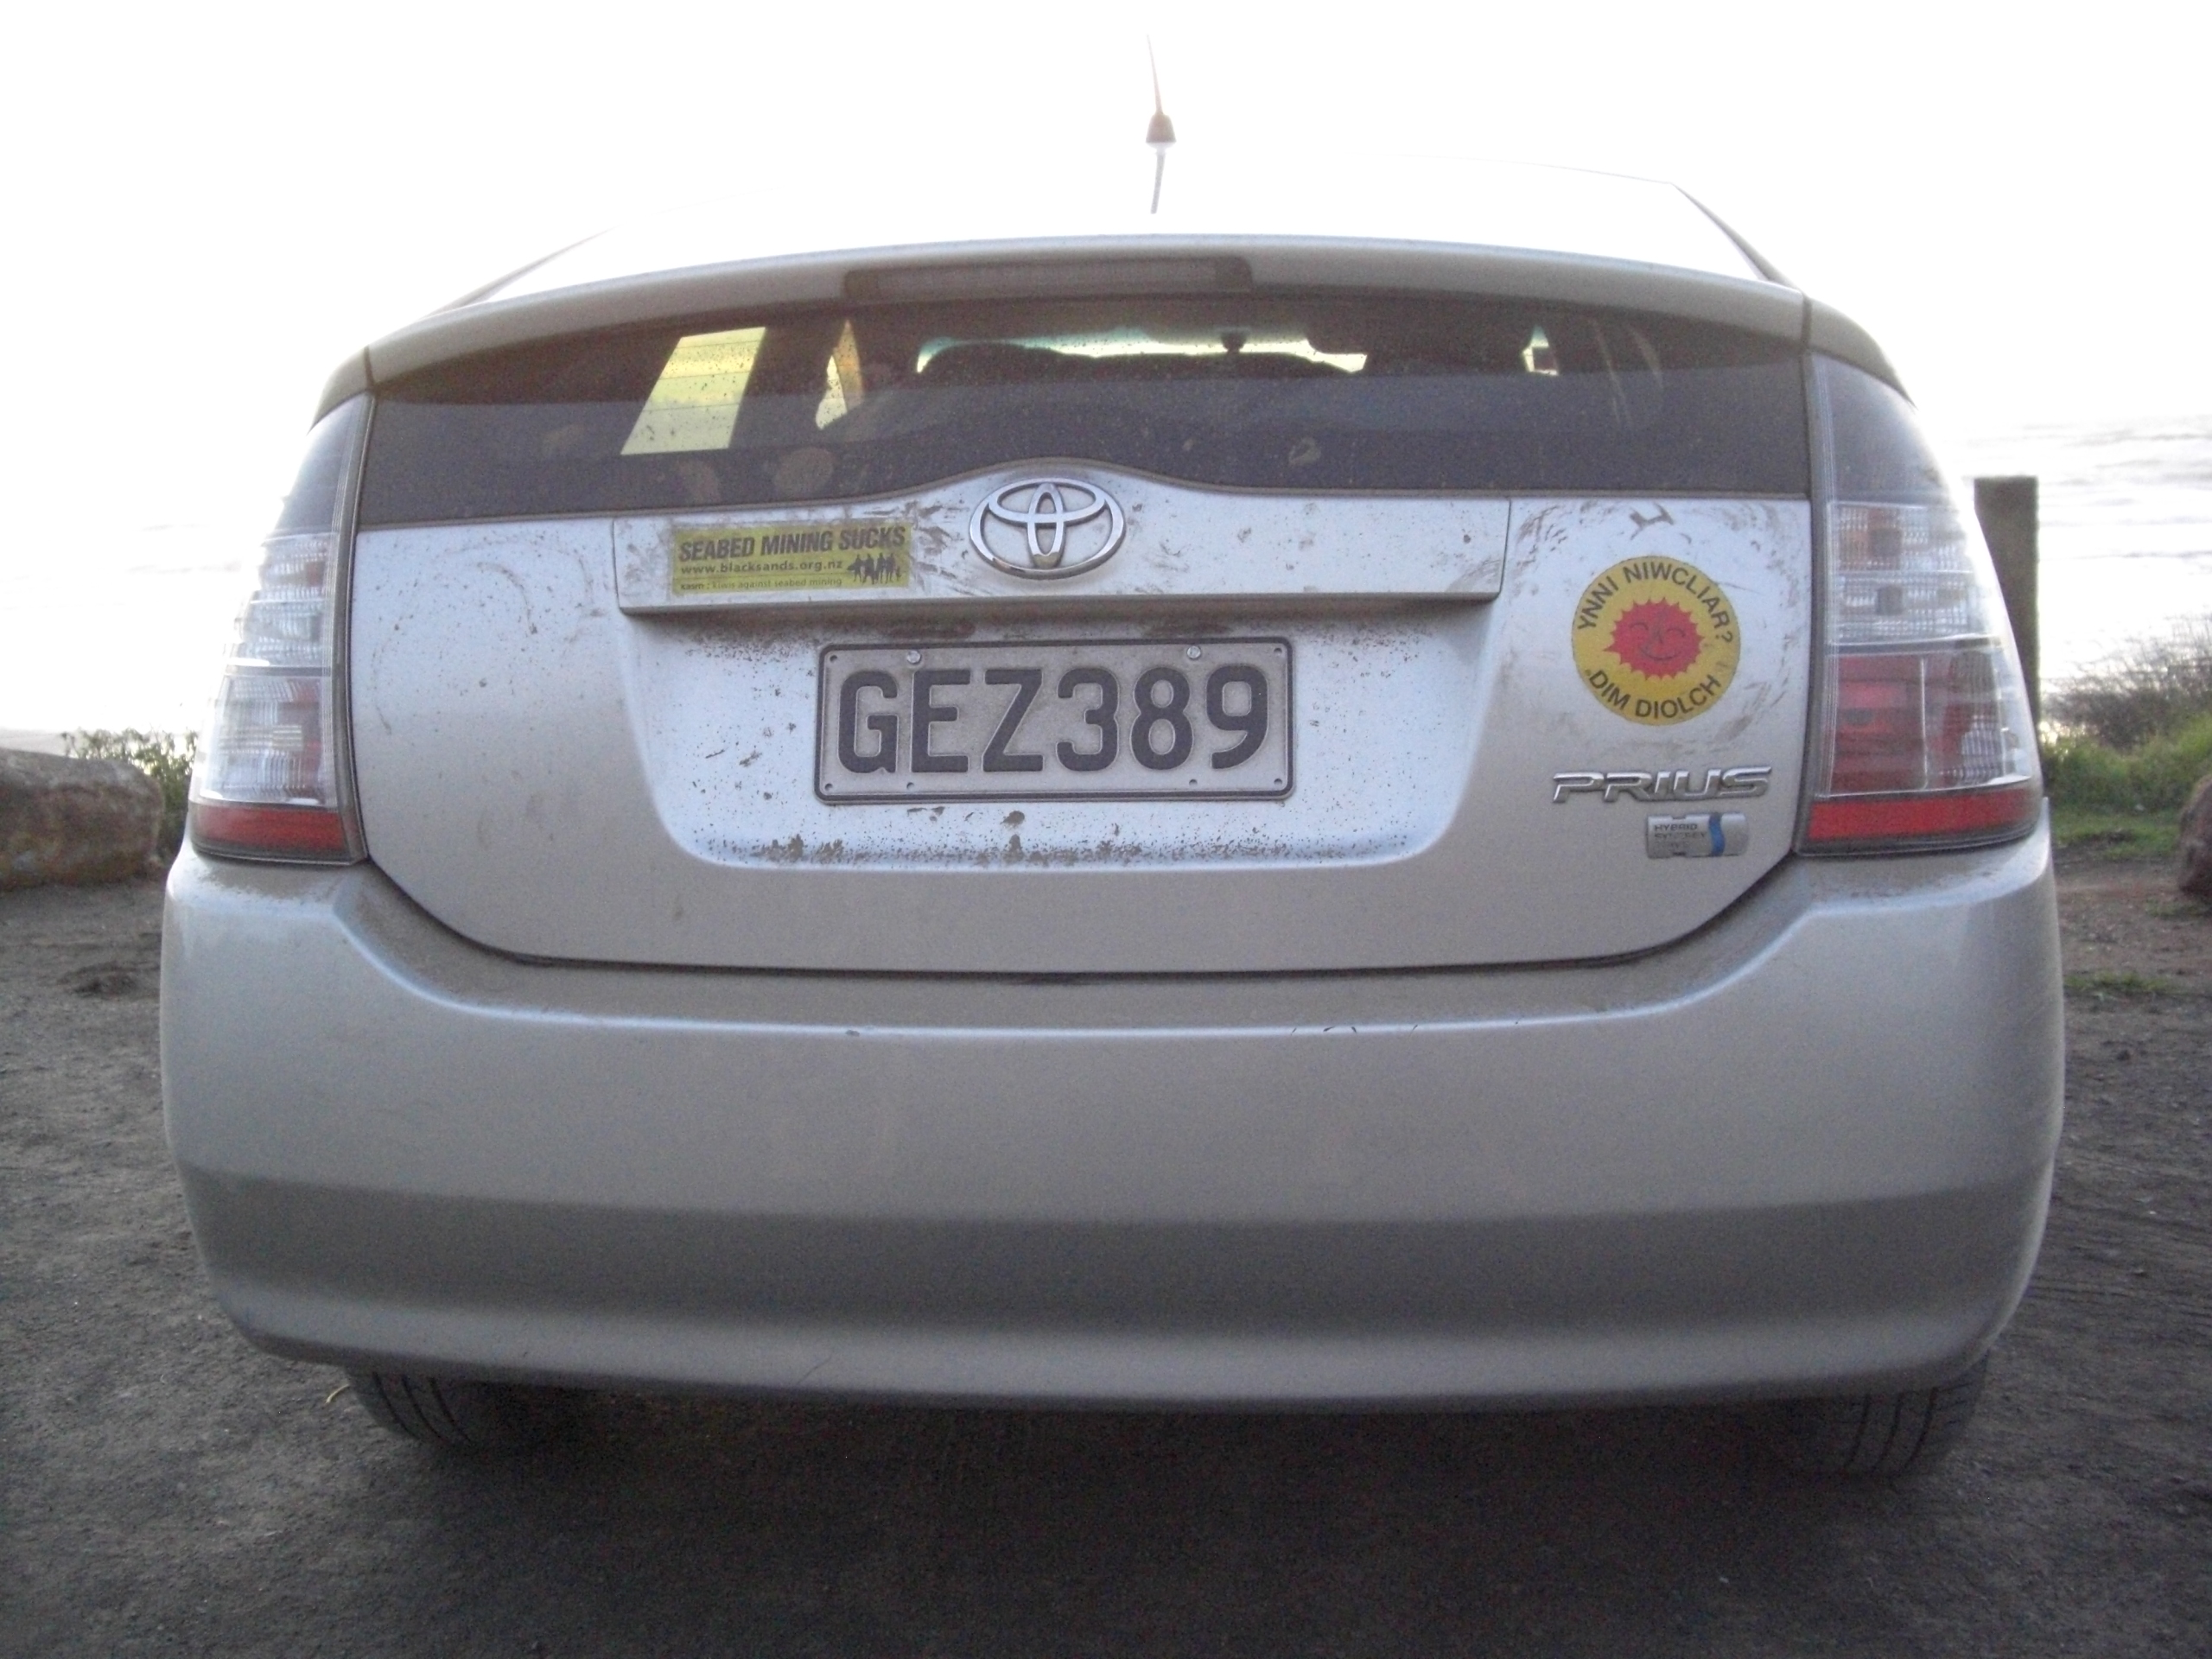 PiwiWiwi's First Prius, rear